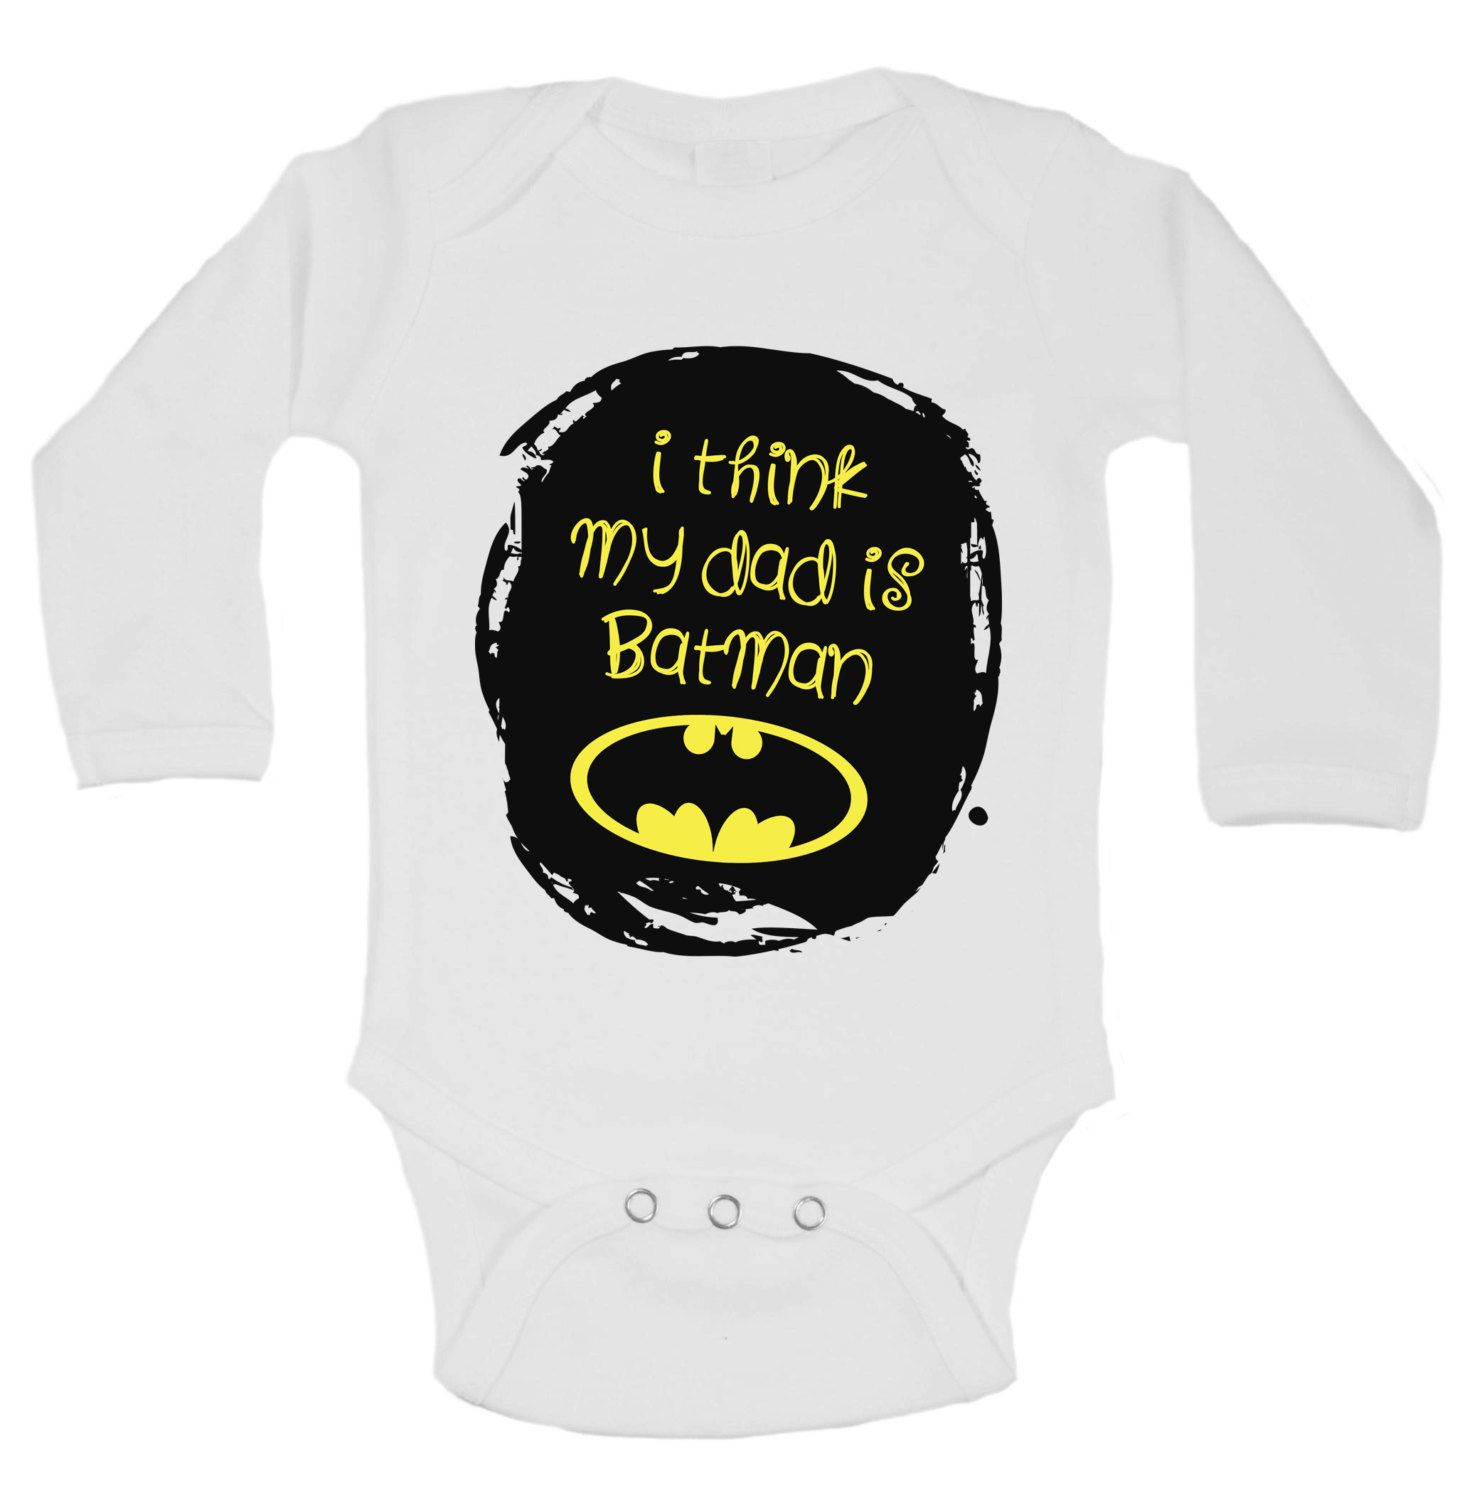 I Think My Dad is BATMAN Super cute new onesie design $13 99 FREE